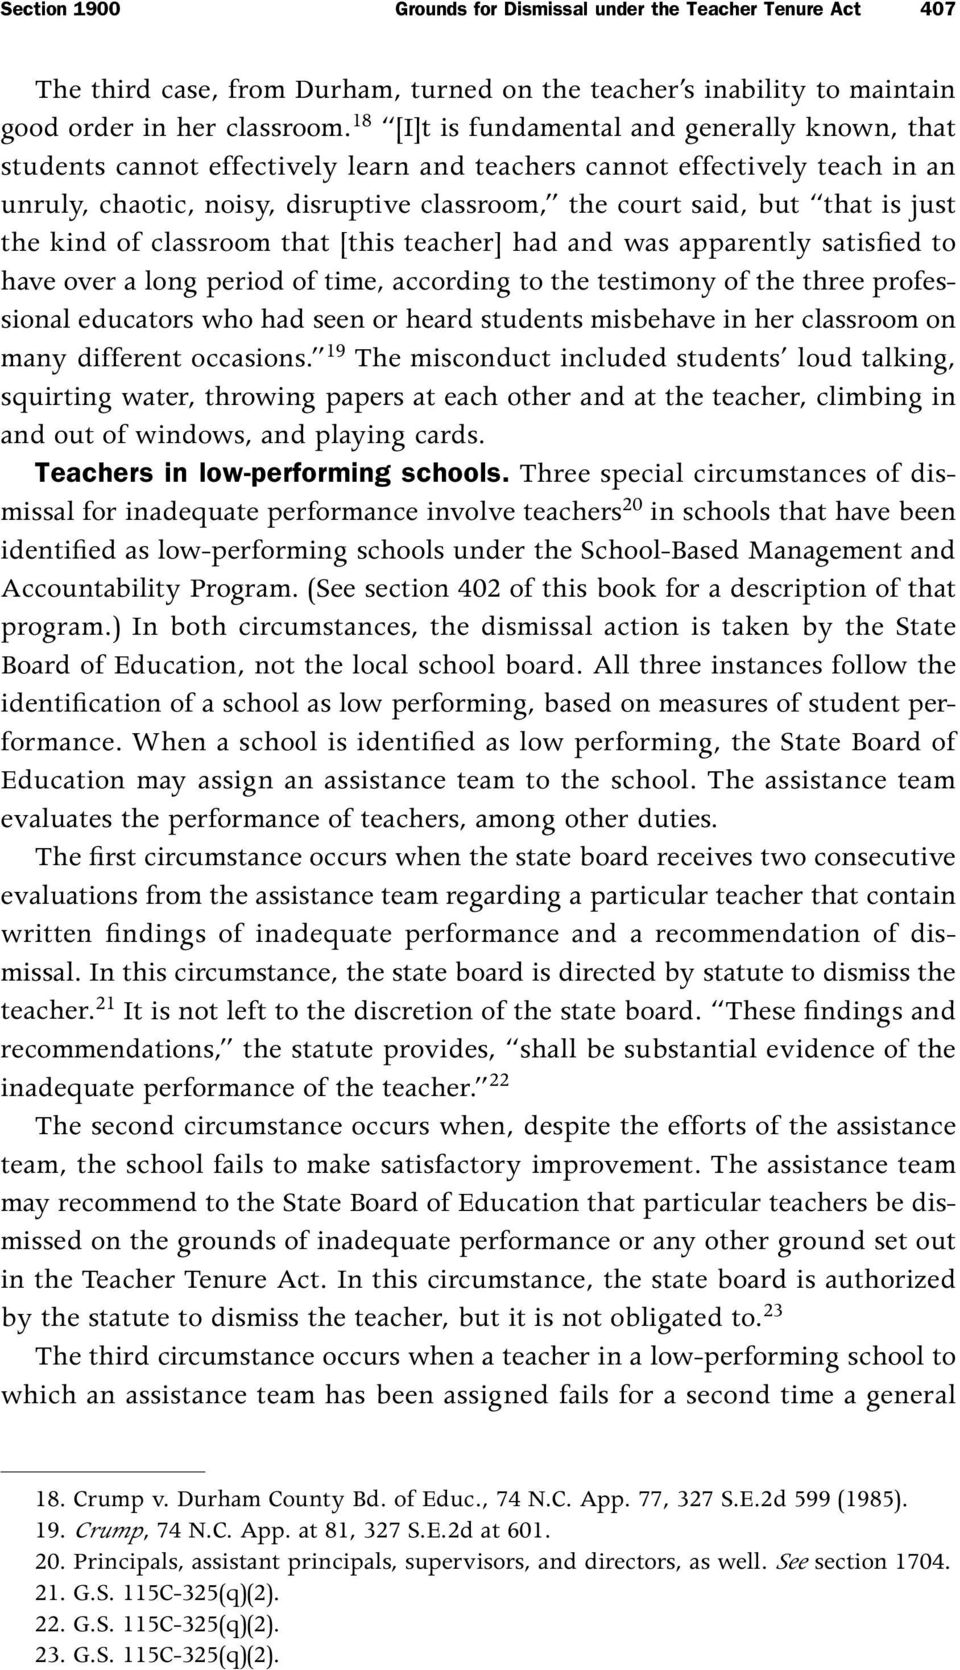 is just the kind of classroom that [this teacher] had and was apparently satisfied to have over a long period of time, according to the testimony of the three professional educators who had seen or